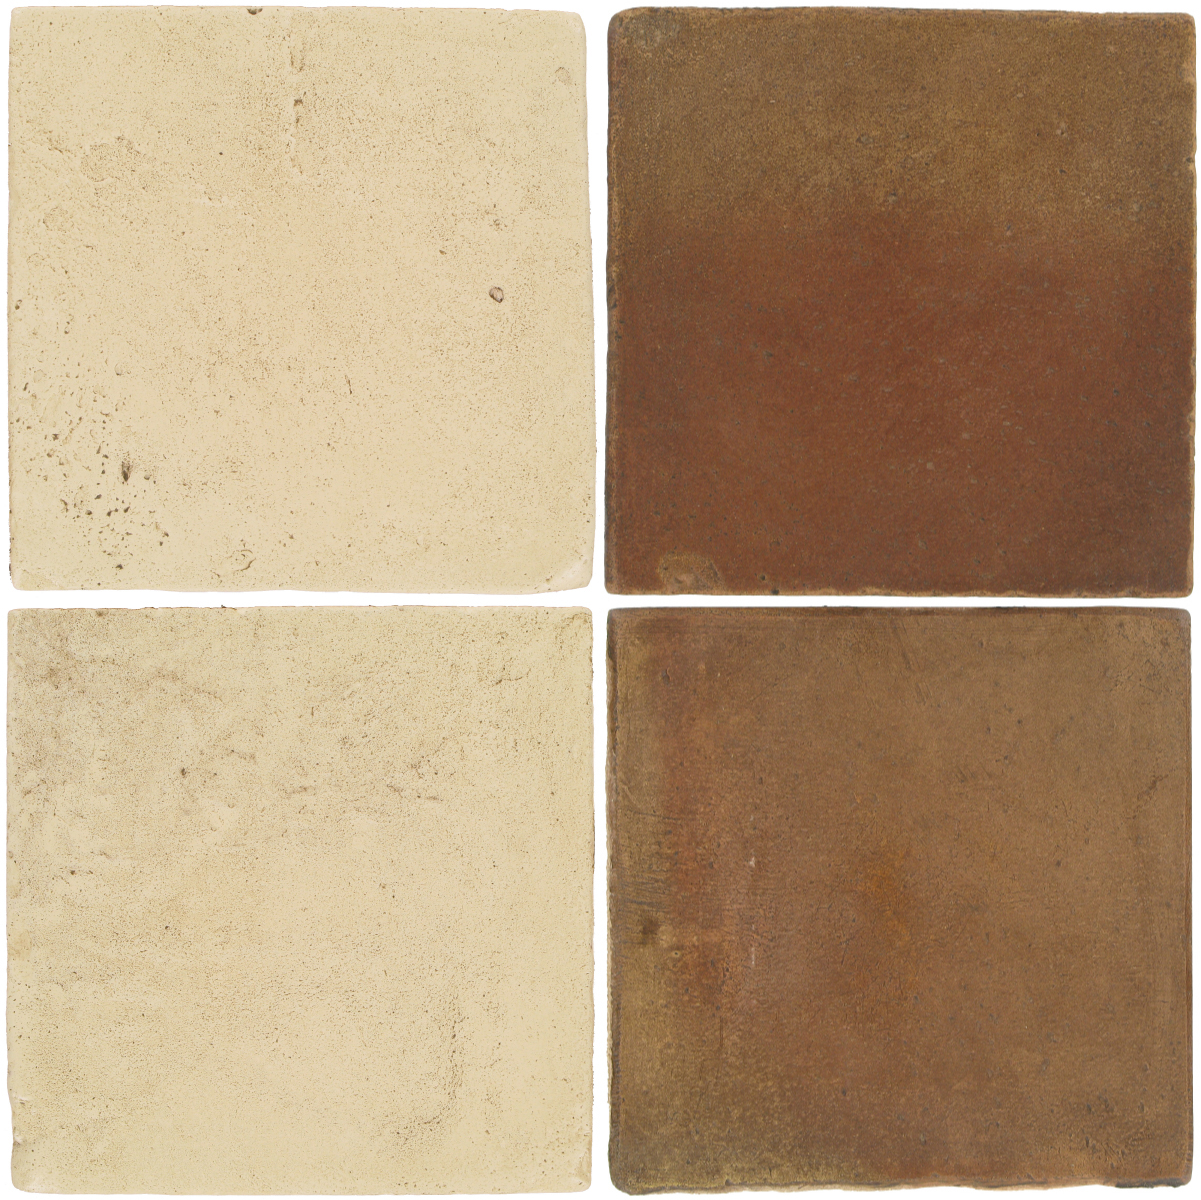 Pedralbes Antique Terracotta  2 Color Combinations  VTG-PGPW Pergamino White + OHS-PSCM Camel Brown